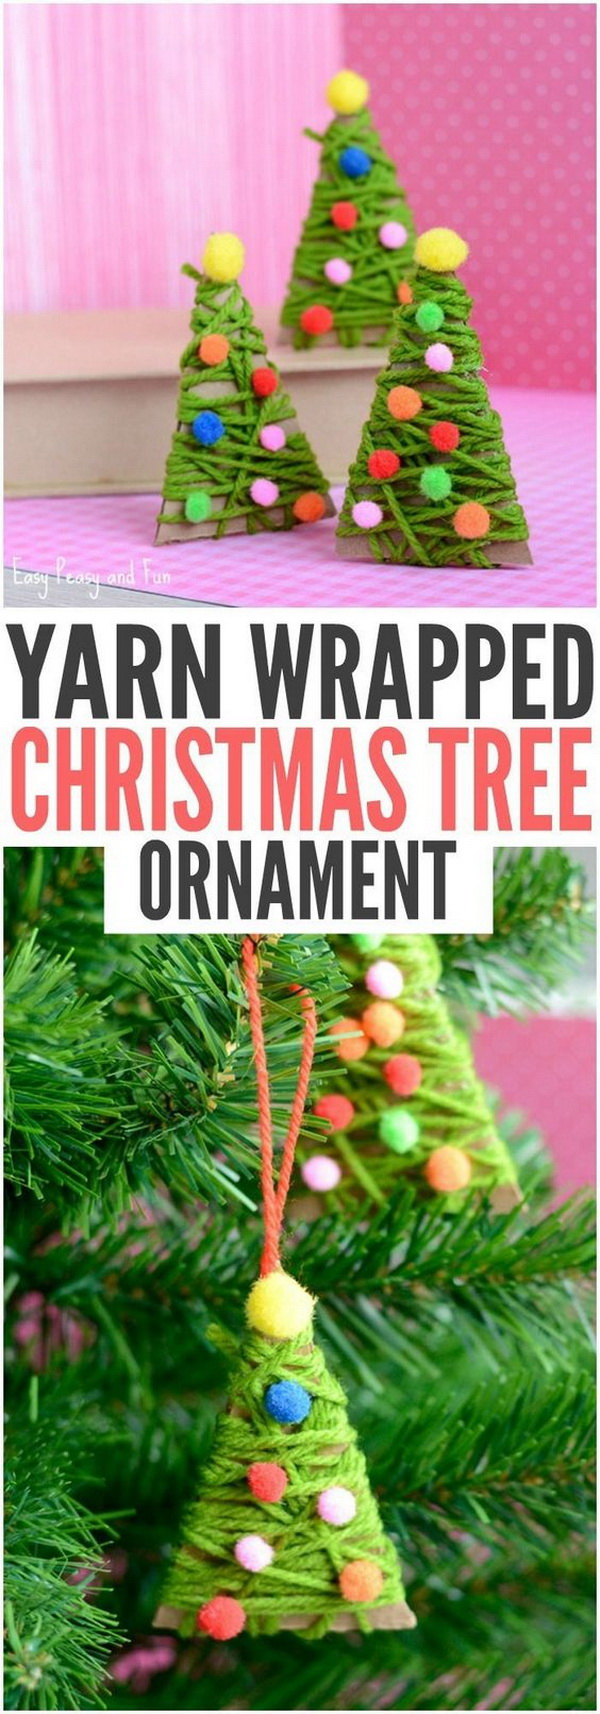 Yarn Wrapped Christmas Tree Ornaments. This yarn wrapped Christmas tree ornaments are a great project both as a Christmas craft or as an ornament for your tree.